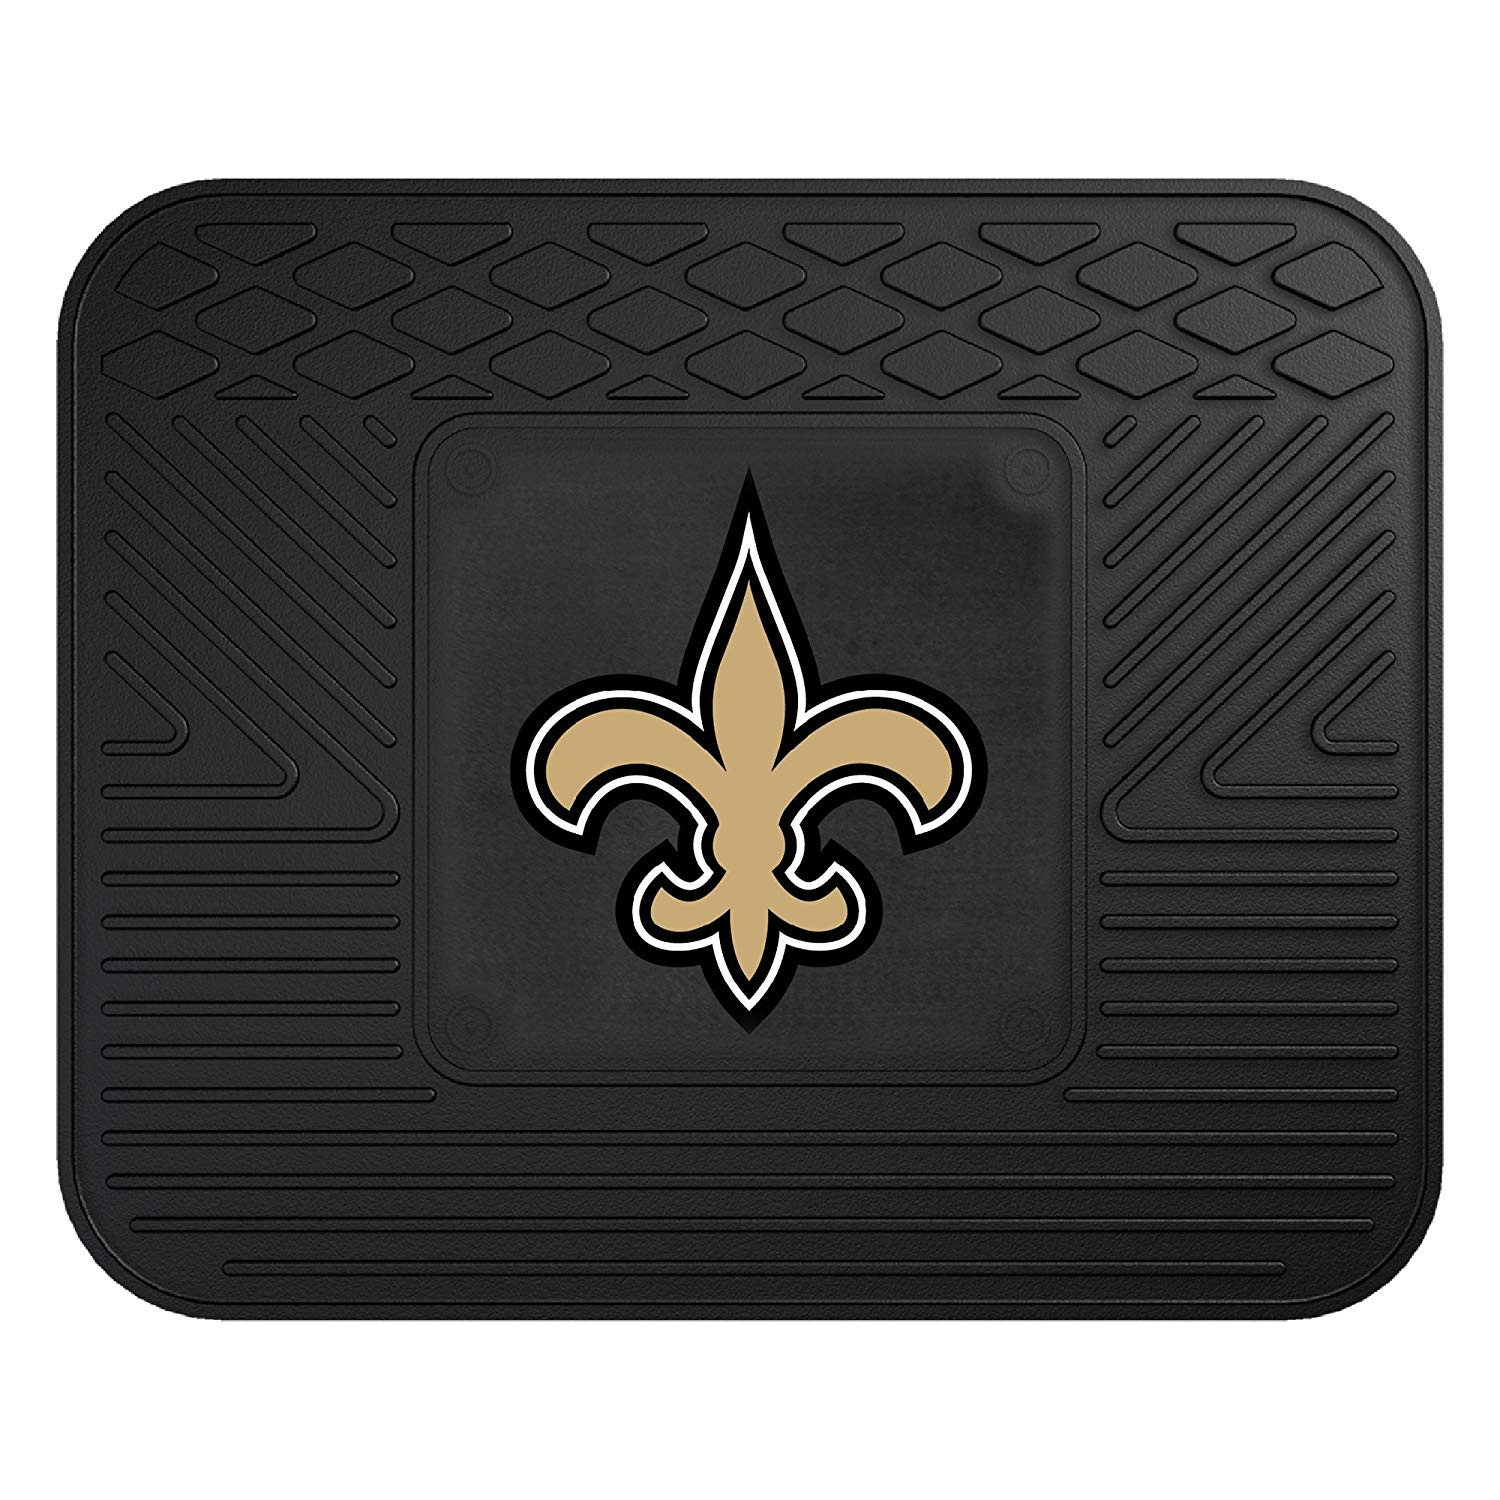 NFL New Orleans Saints Vinyl Utility Mat, Deep pockets catch and hold dirt and water as the ribs scrap and clean the bottoms of shoes By Fanmats